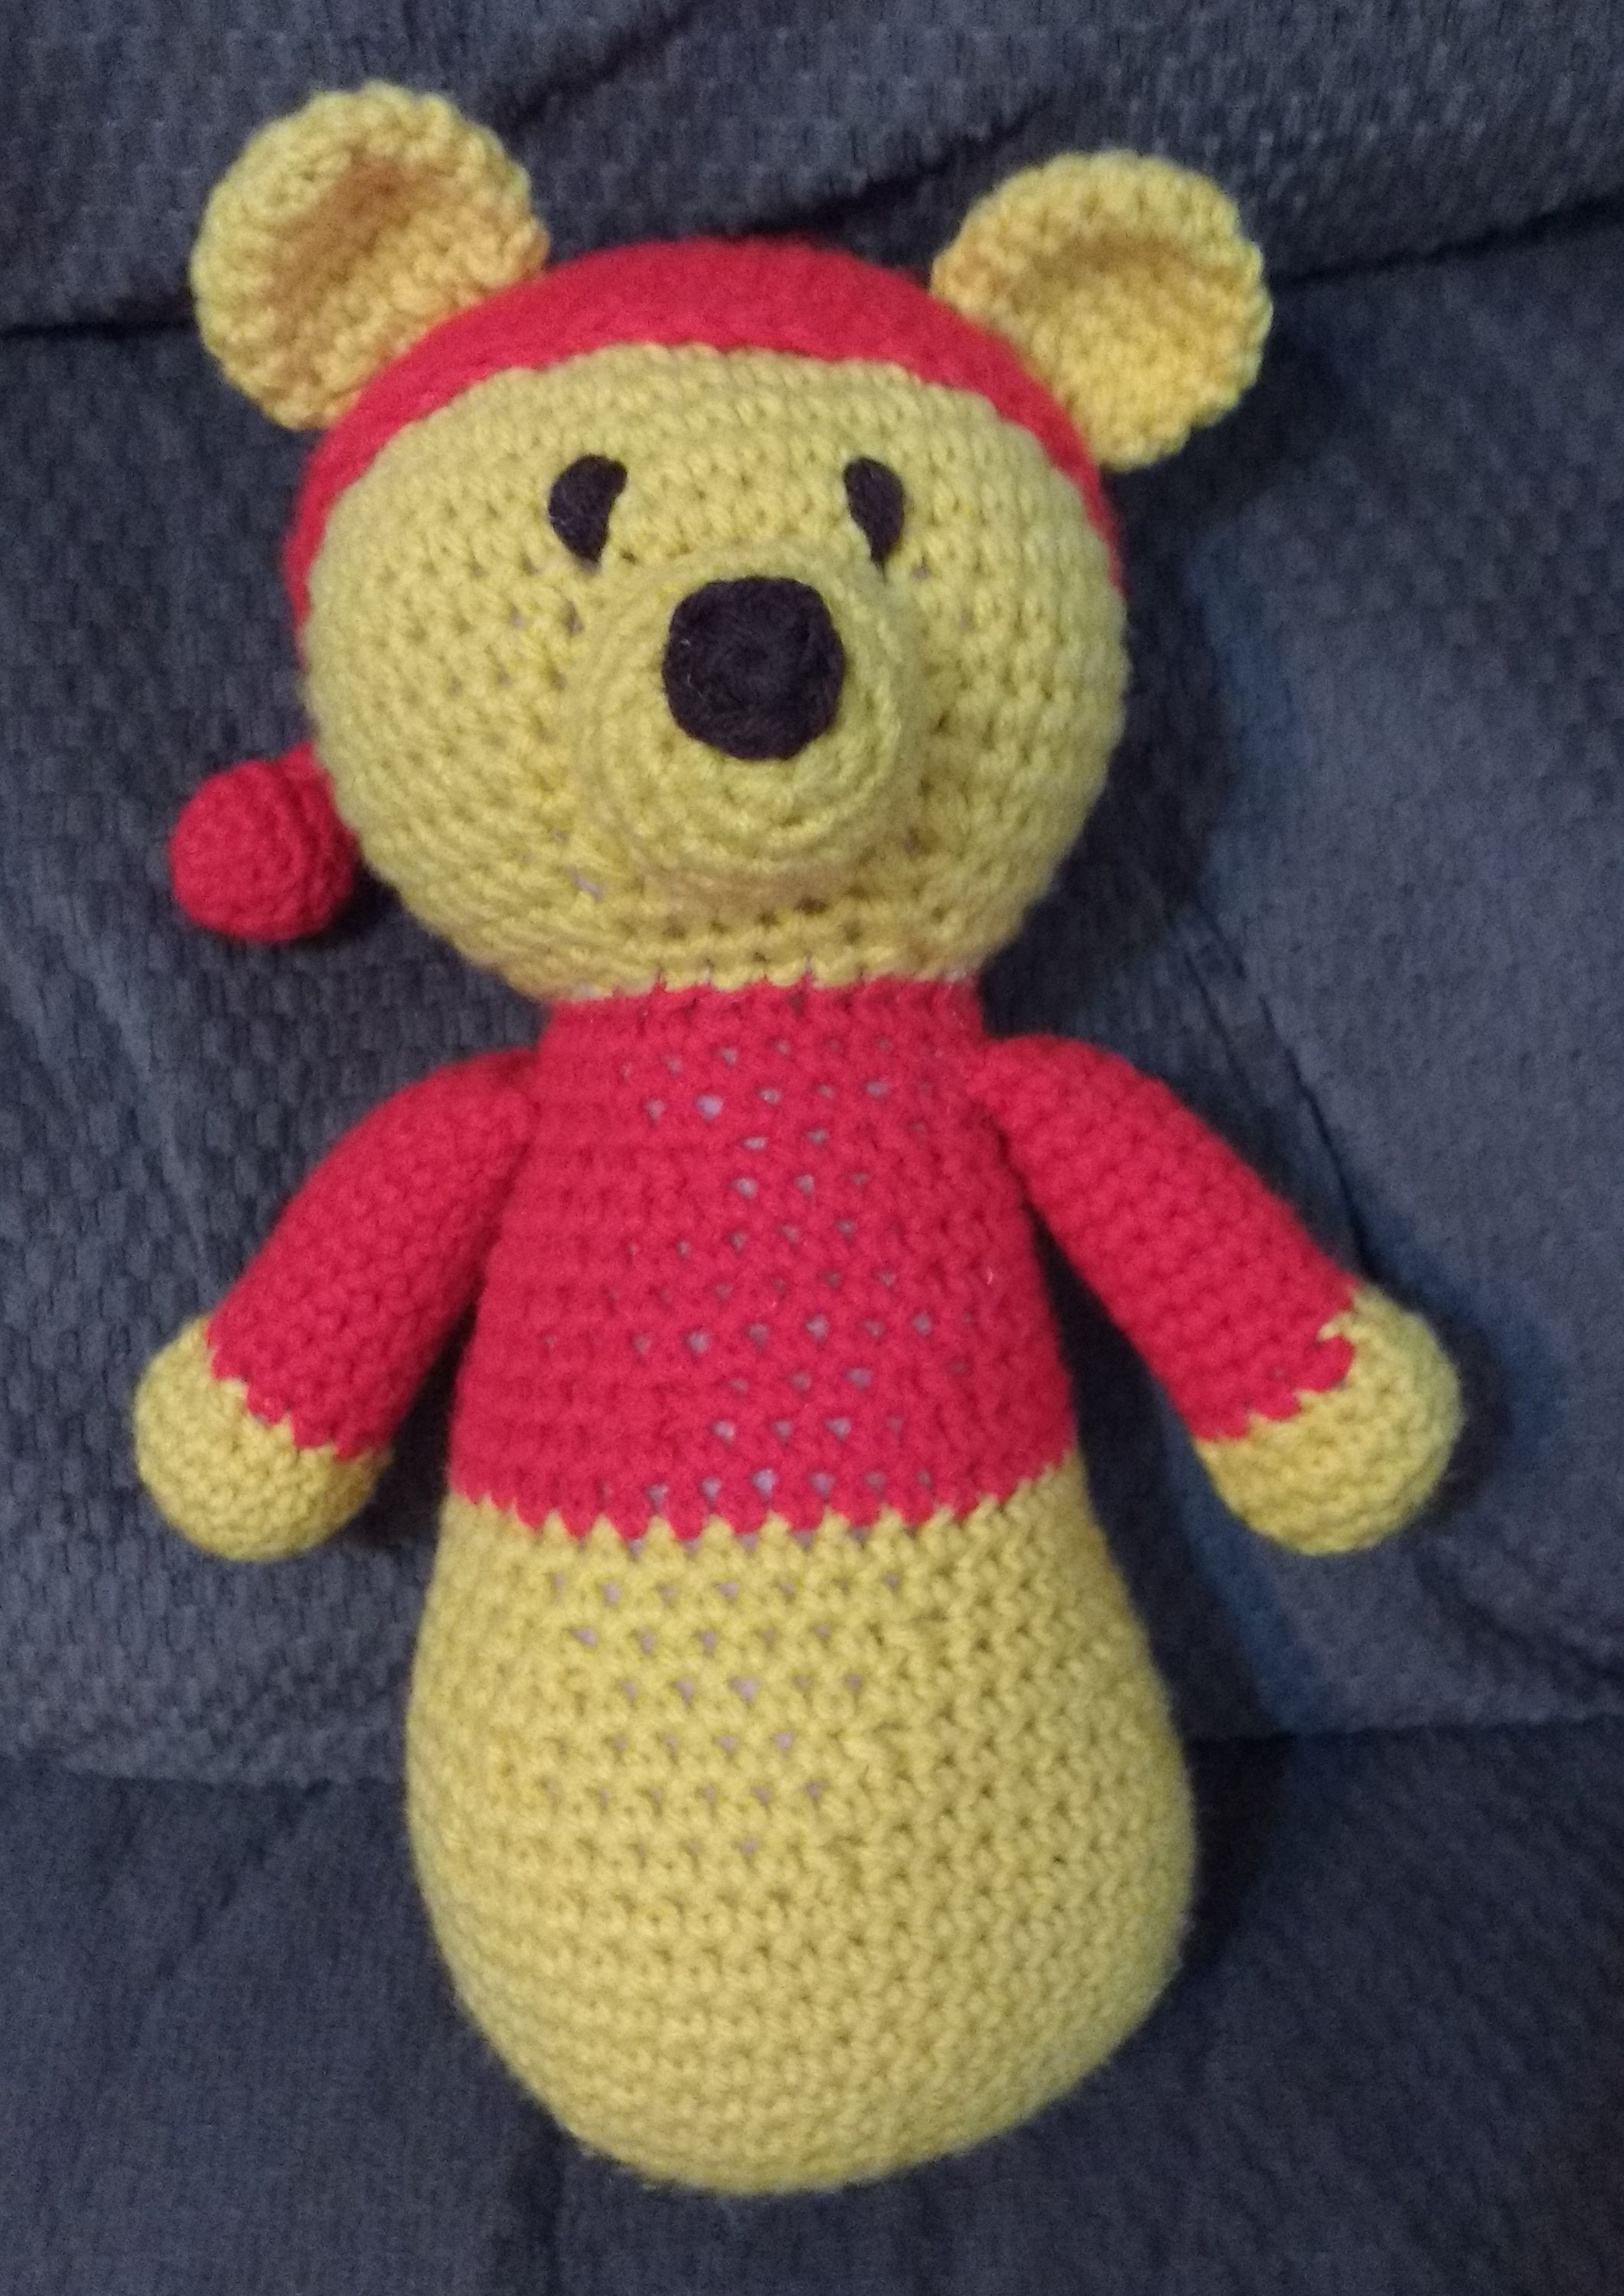 Crochet Project: Pooh Bear! I made this bear from a free pattern ...